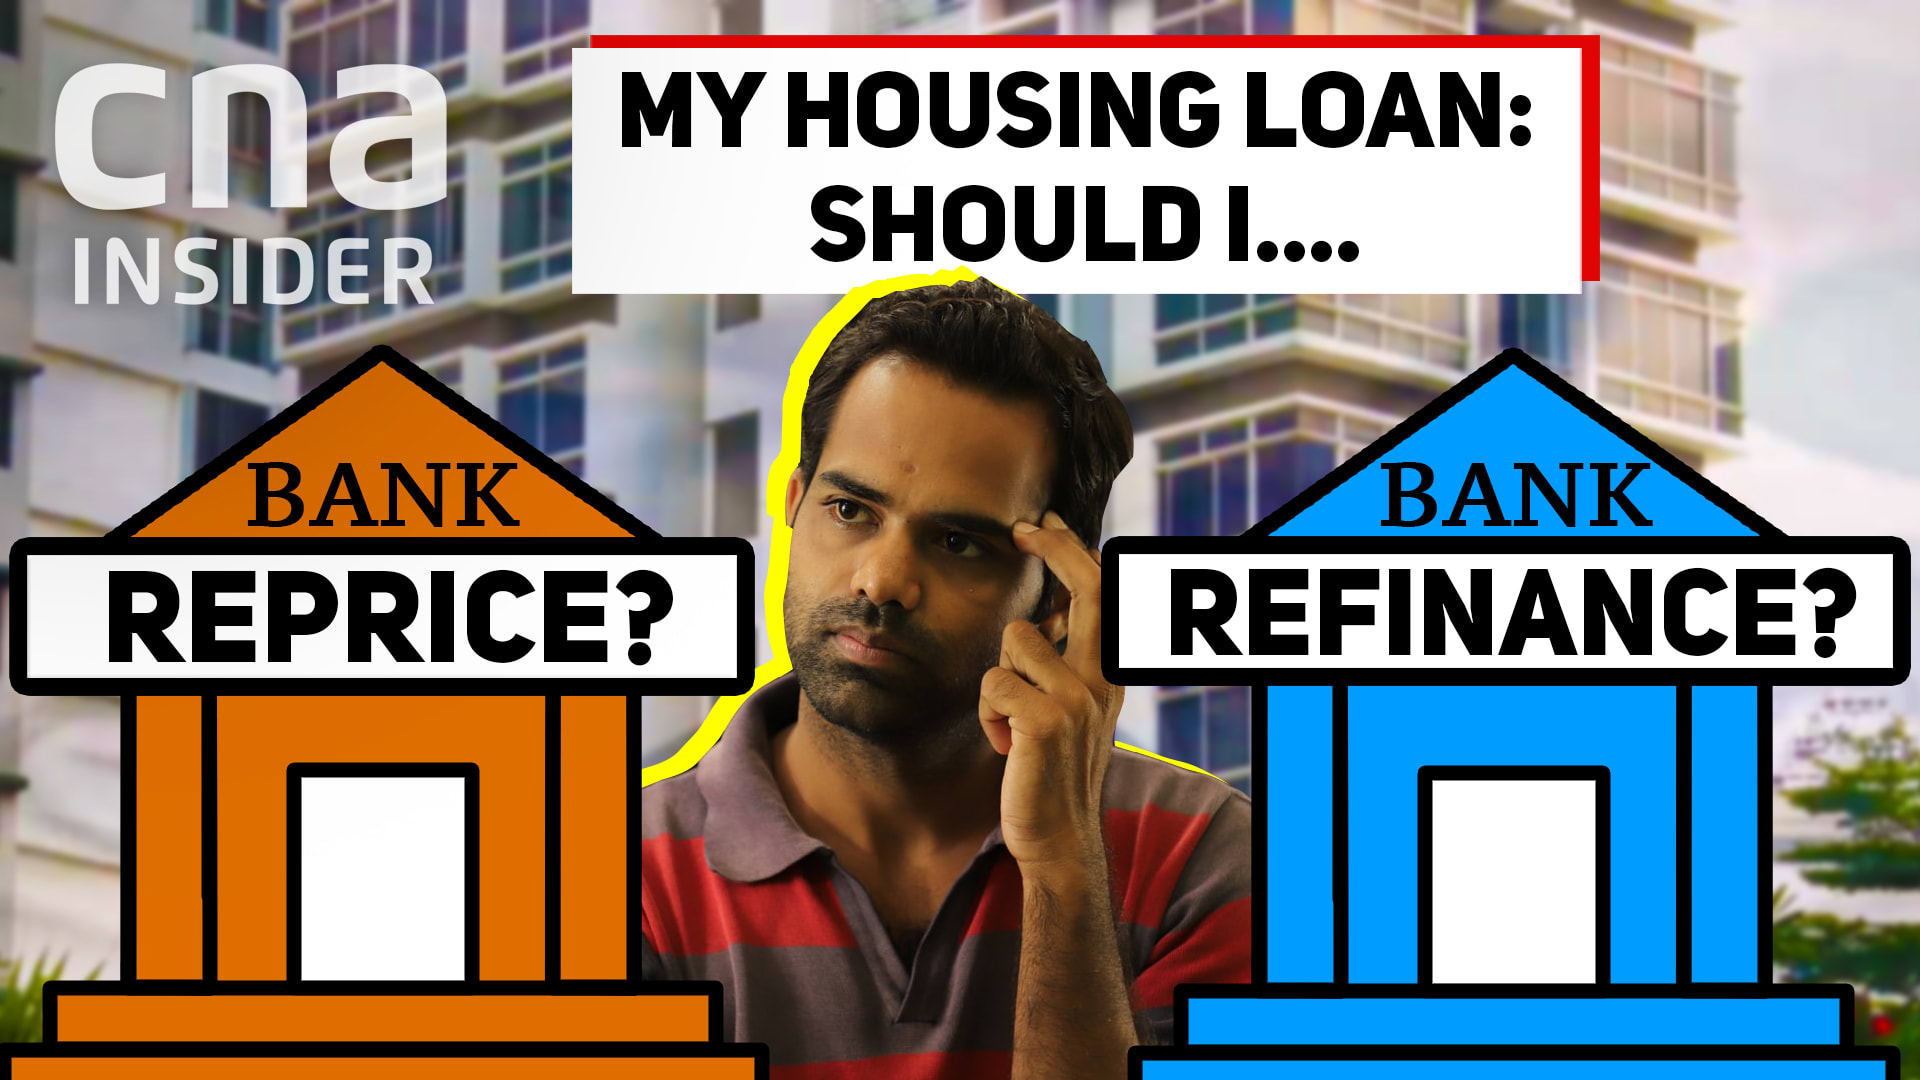 Money Hacks : Should I reprice or refinance my housing loan?